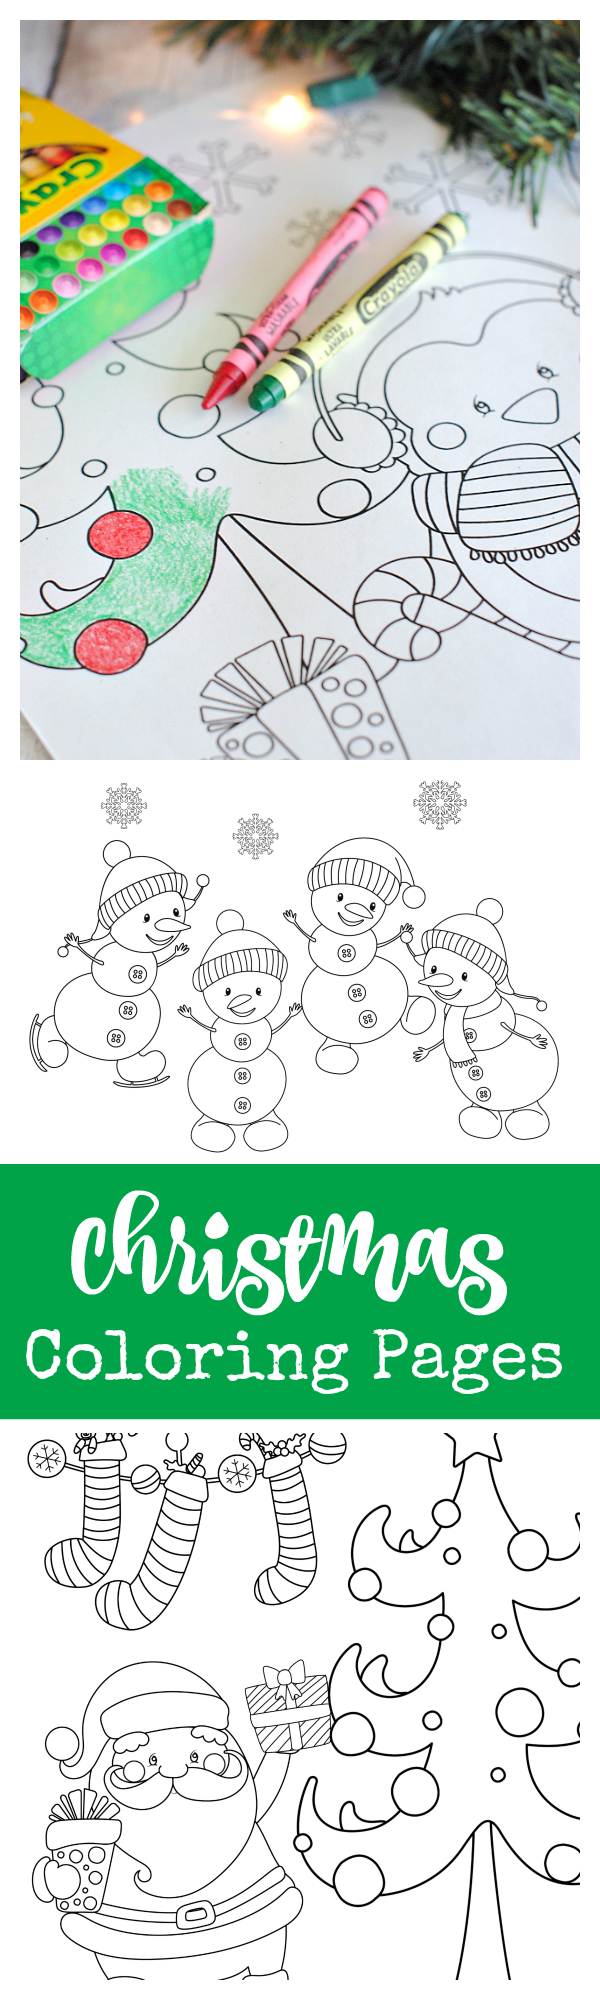 Free printable coloring pages about christmas - Free Printable Christmas Coloring Pages